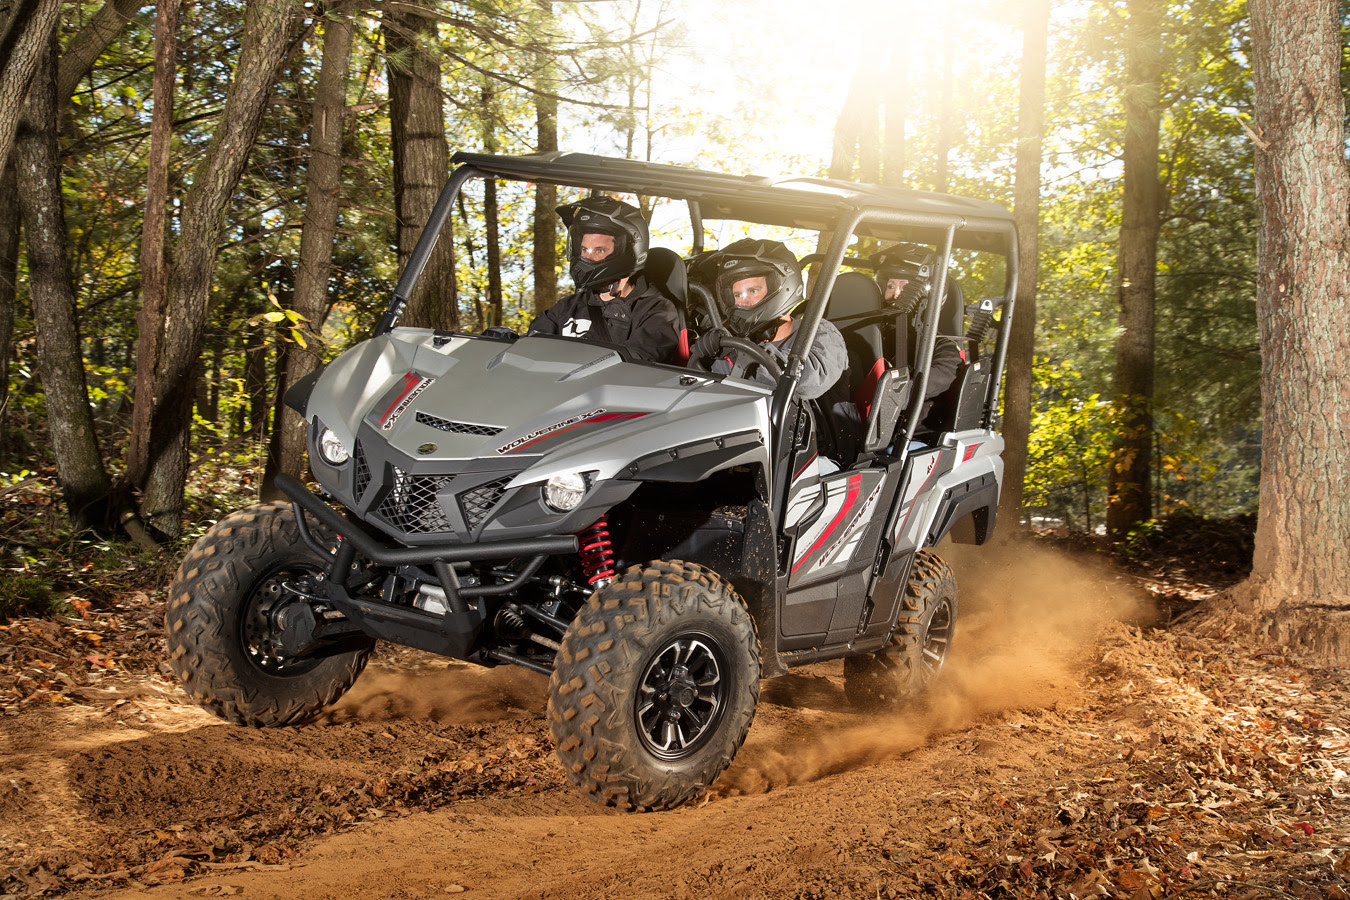 2018 Yamaha Wolverine X4 Test Review With Video